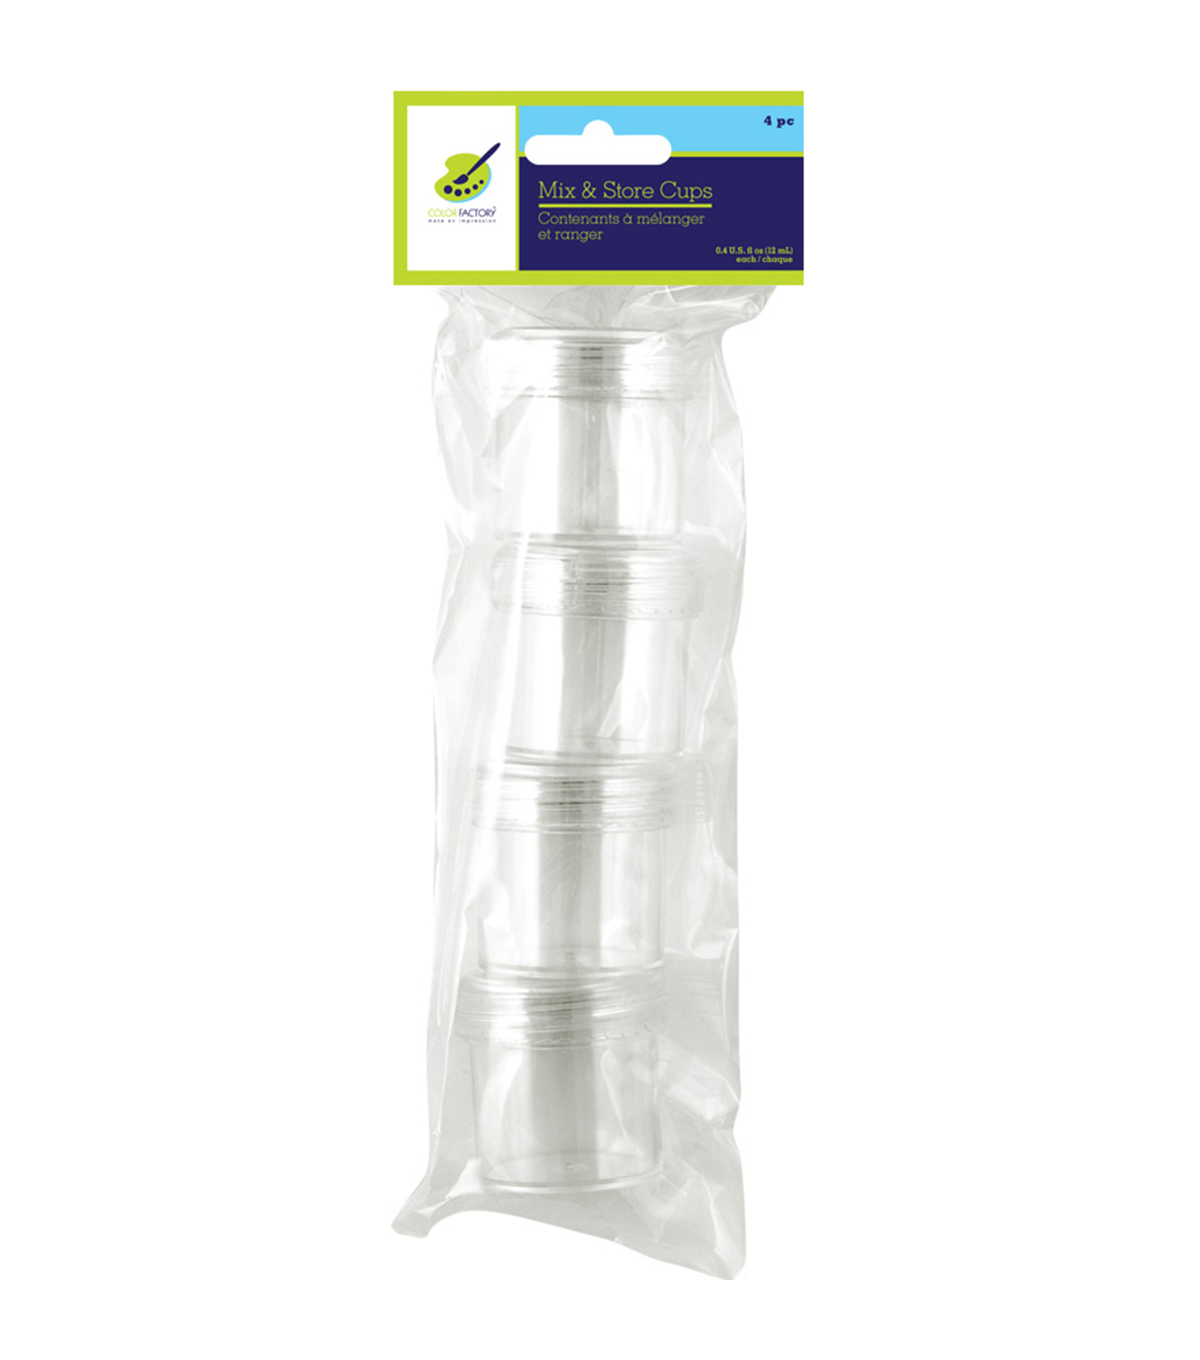 Mix & Store Cups 4/Pkg-.4oz